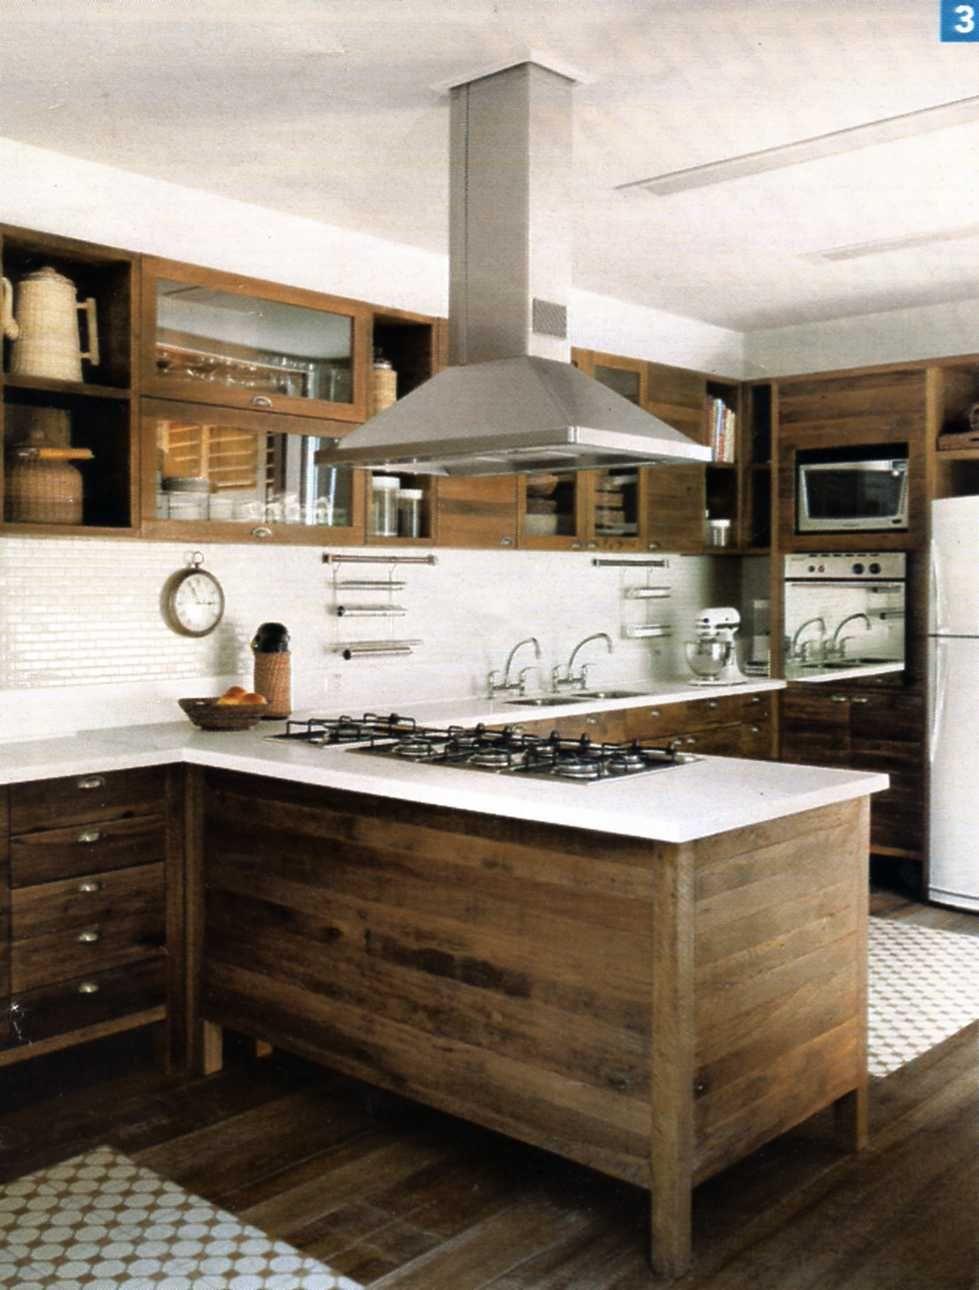 Modern Kitchen With Raw Wood Cabinets White Back Splash Stainless